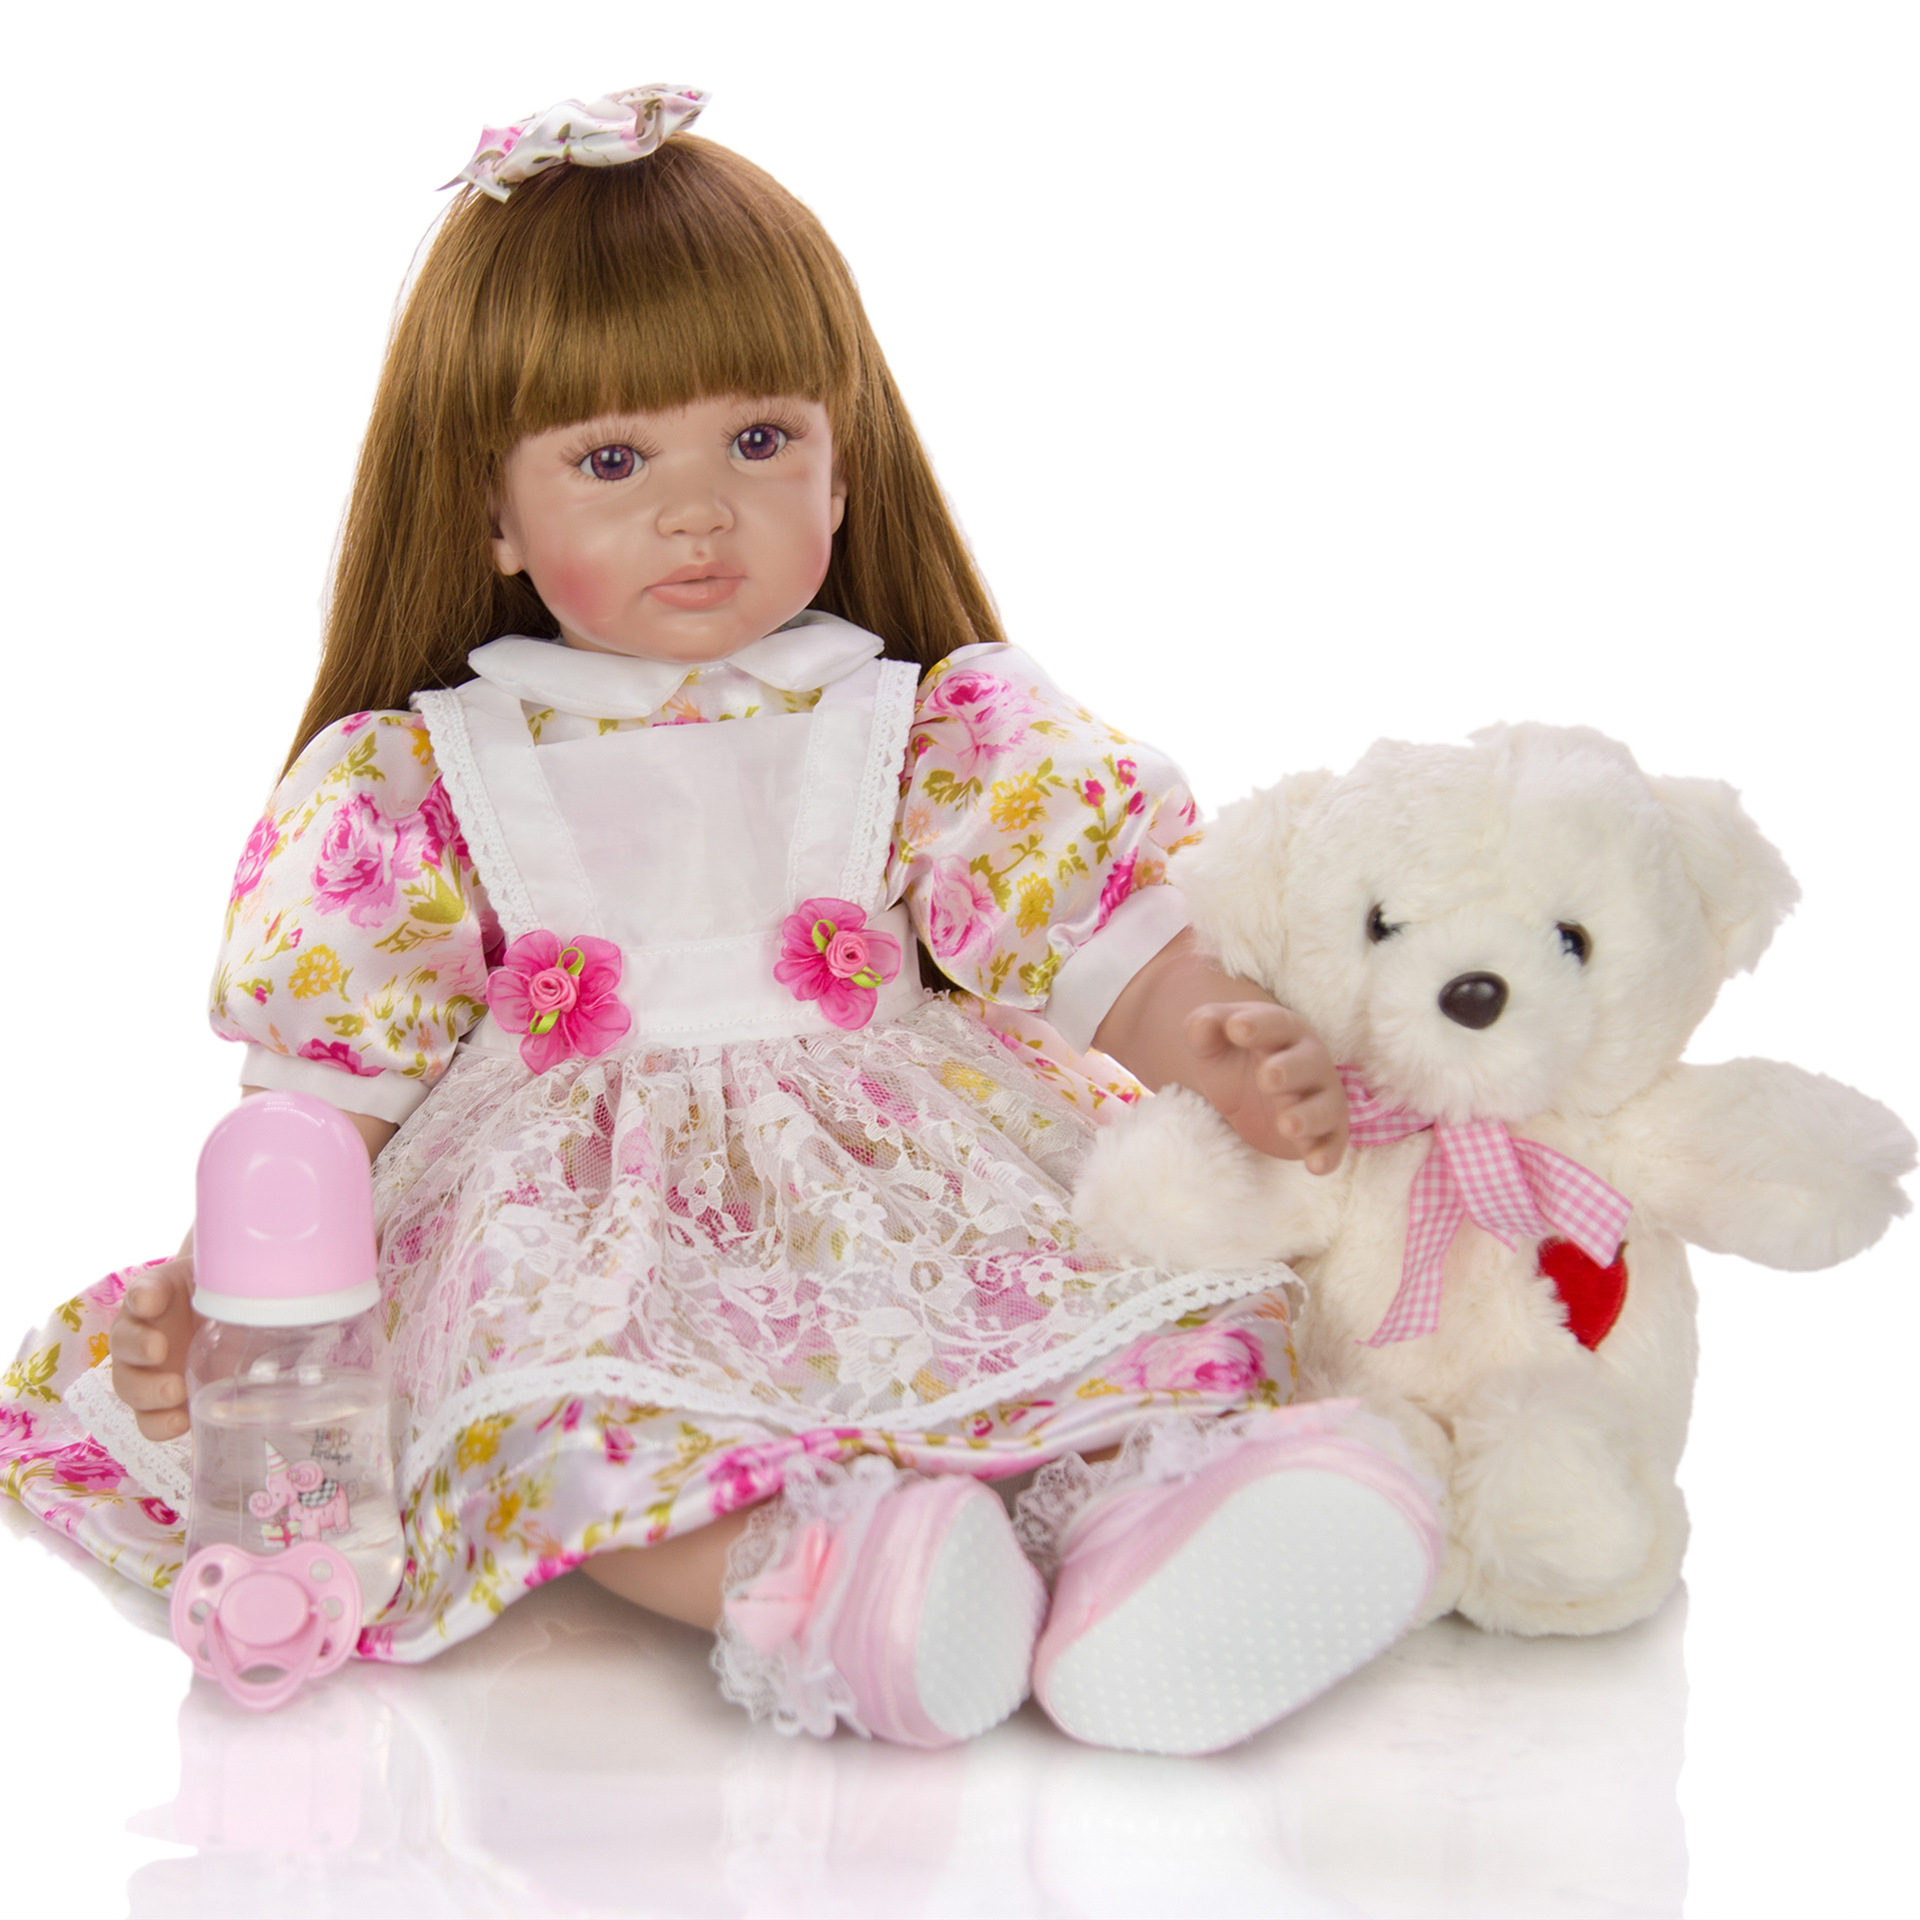 KEIUMI <font><b>60</b></font> <font><b>cm</b></font> <font><b>Reborn</b></font> toddler Girl realista bebe <font><b>Reborn</b></font> Cloth Body silicone vinyl <font><b>dolls</b></font> 24 Inch <font><b>Reborn</b></font> Boneca Toy For kids gift image